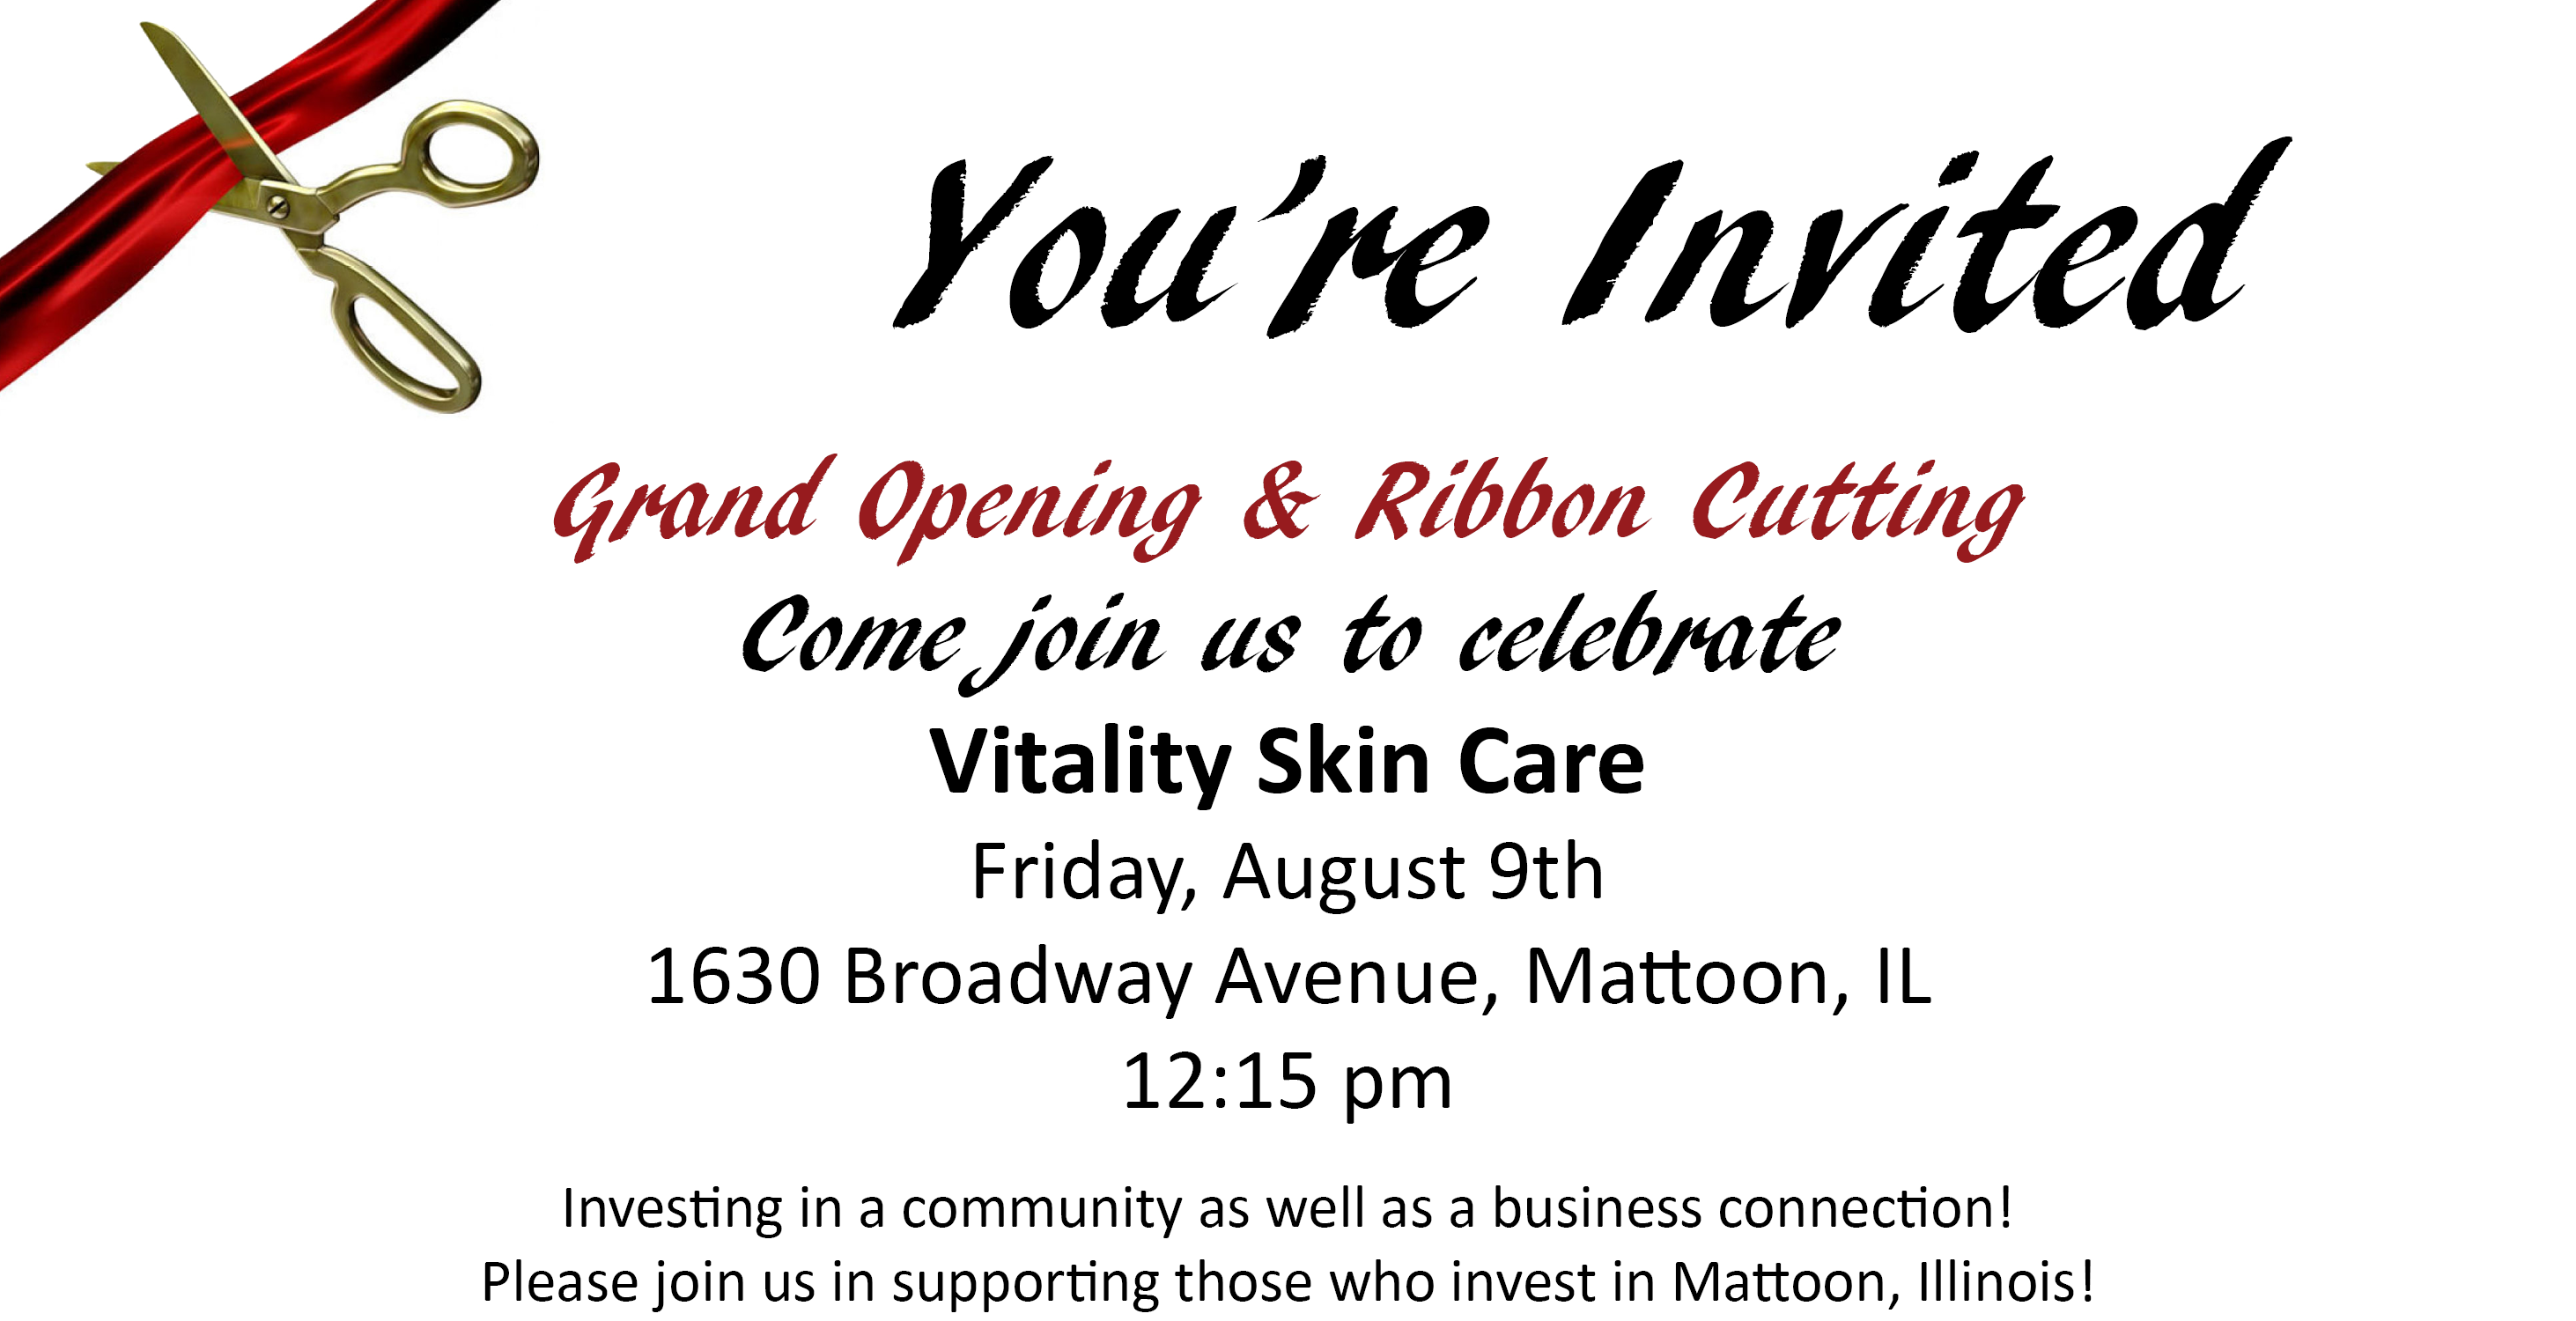 Grand Opening & Ribbon Cutting @ Vitality Skin Care